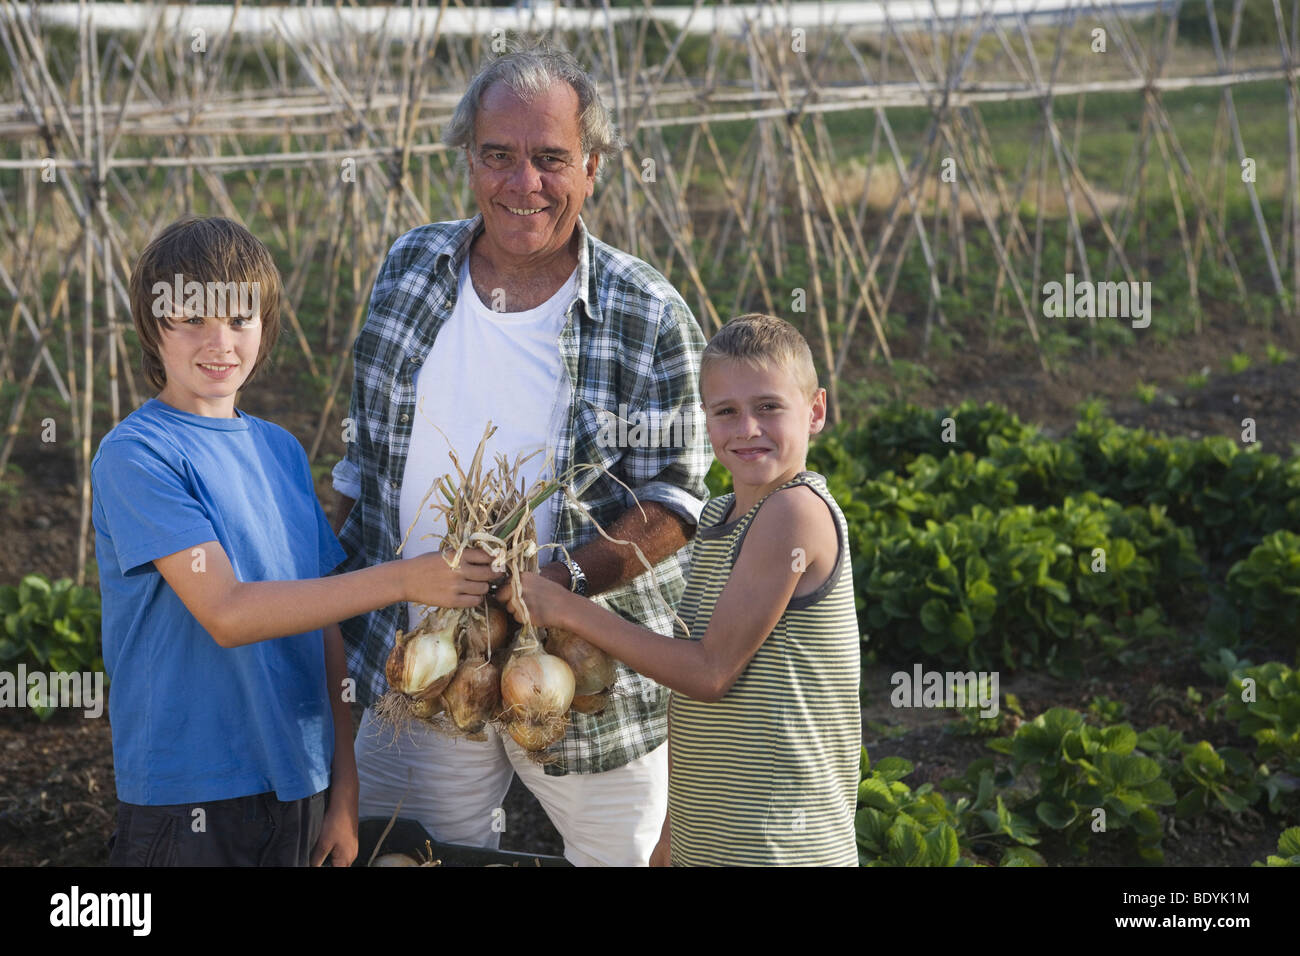 Grandfather and grandsons holding onions - Stock Image